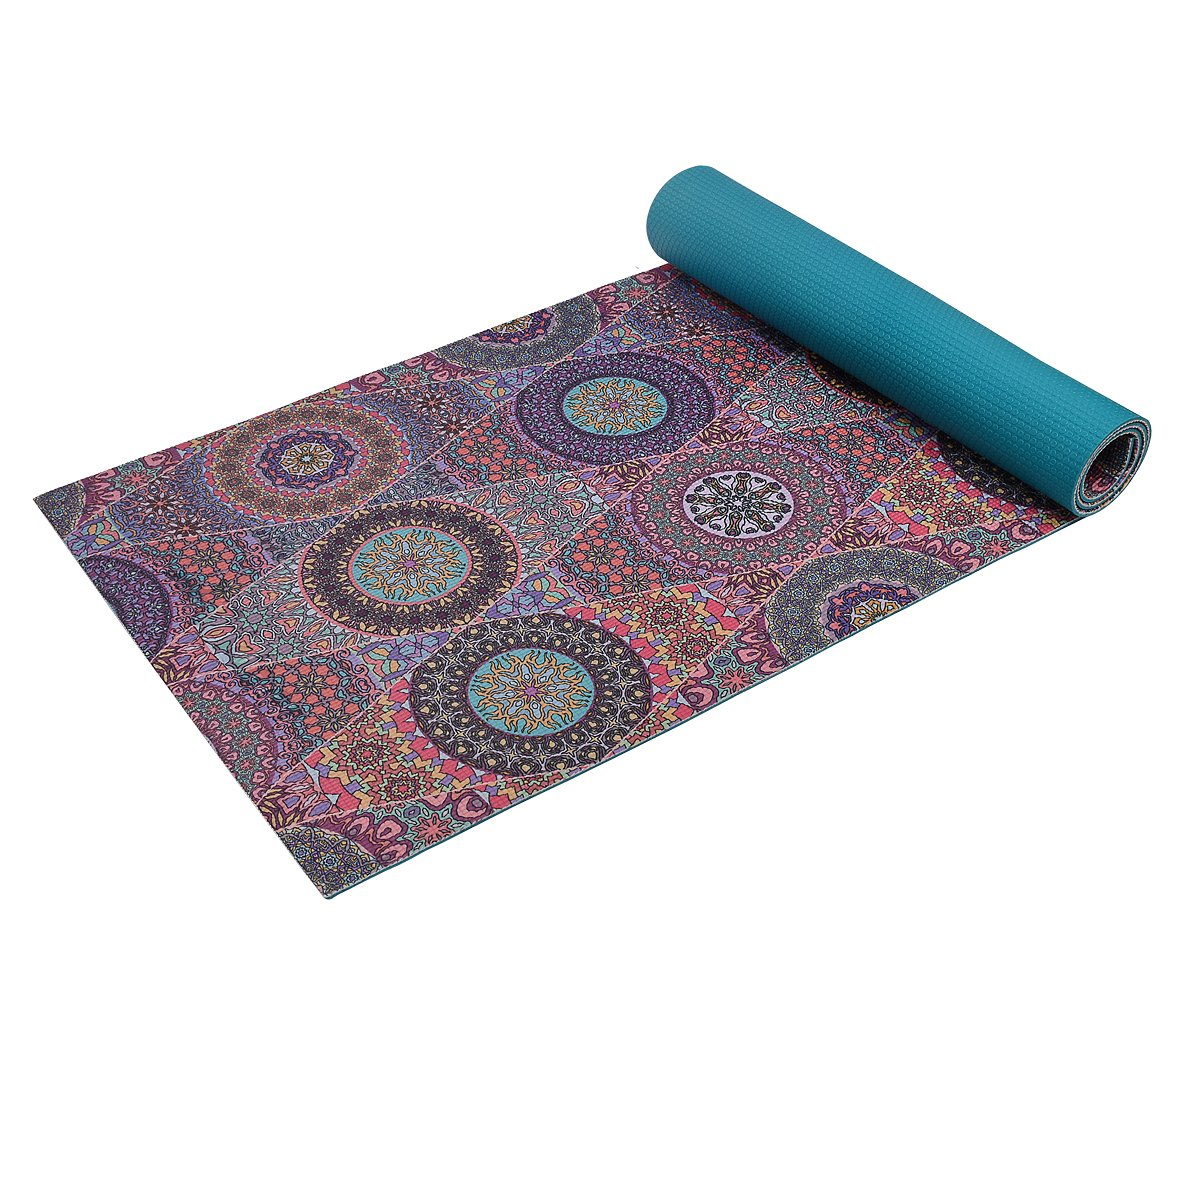 Trideer High-Density Yoga Mat, Premium Printed 1/4'' Extra Thick Non-Slip Eco-friendly Anti-Tear 6mm Floor Pilates Exercise Mat for Yoga, Workout, Fitness with Carrying Strap (Mystic Baroque)